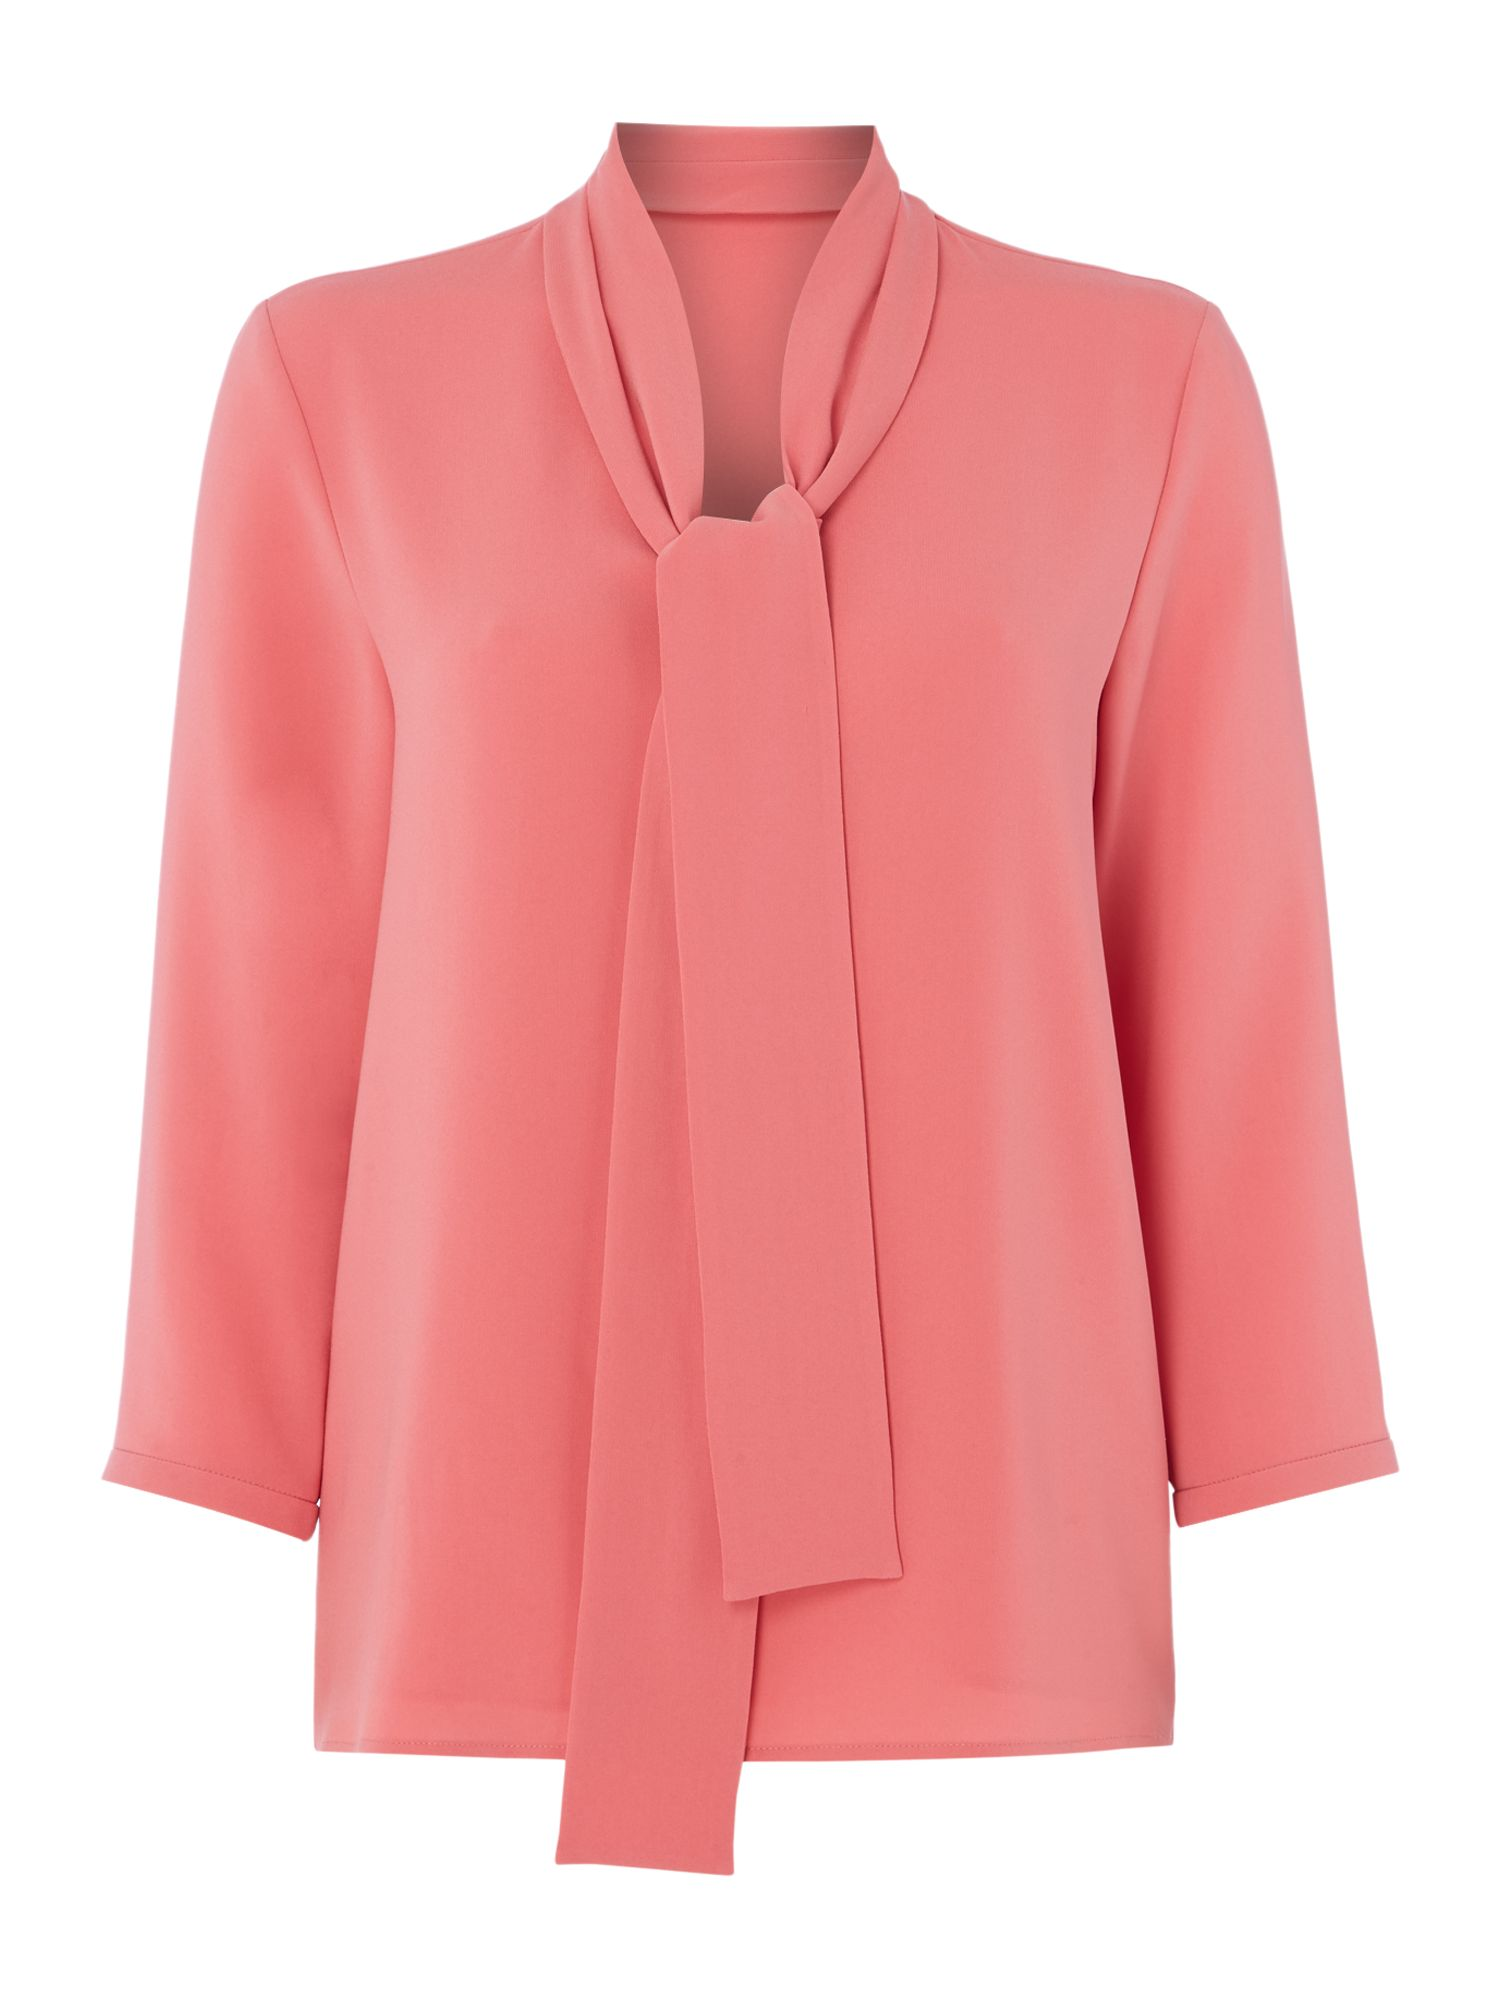 Hugo Boss Lasena tie neck blouse, Pink